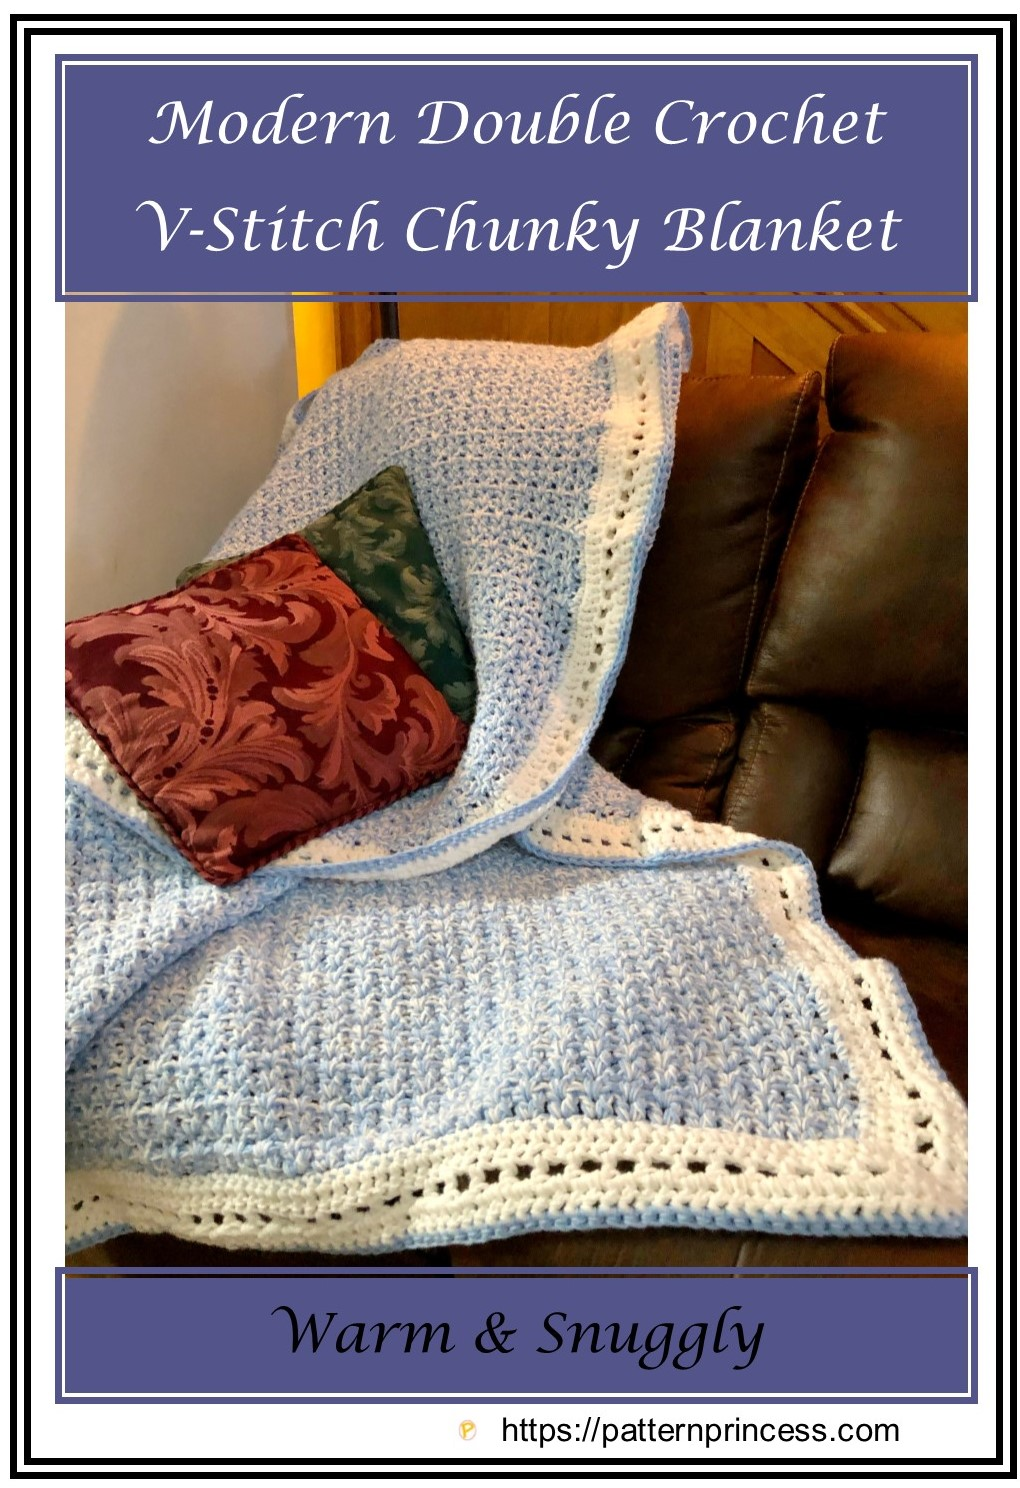 Modern Double Crochet V-Stitch Chunky Blanket